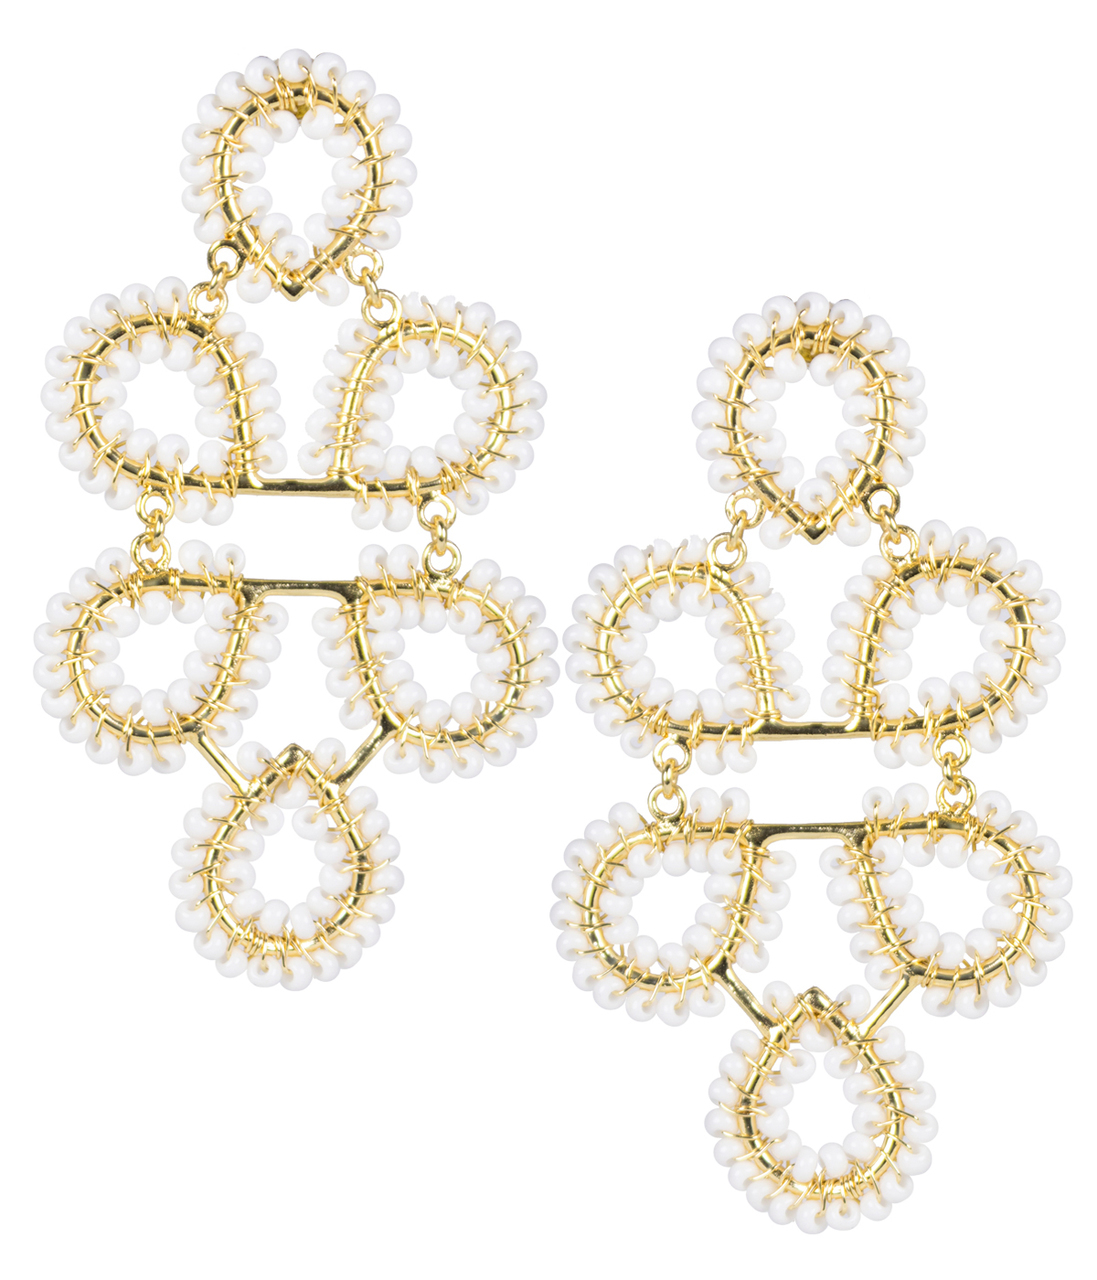 05c5043a1 Lisi Lerch Ginger White Earrings | HAUTEheadquarters